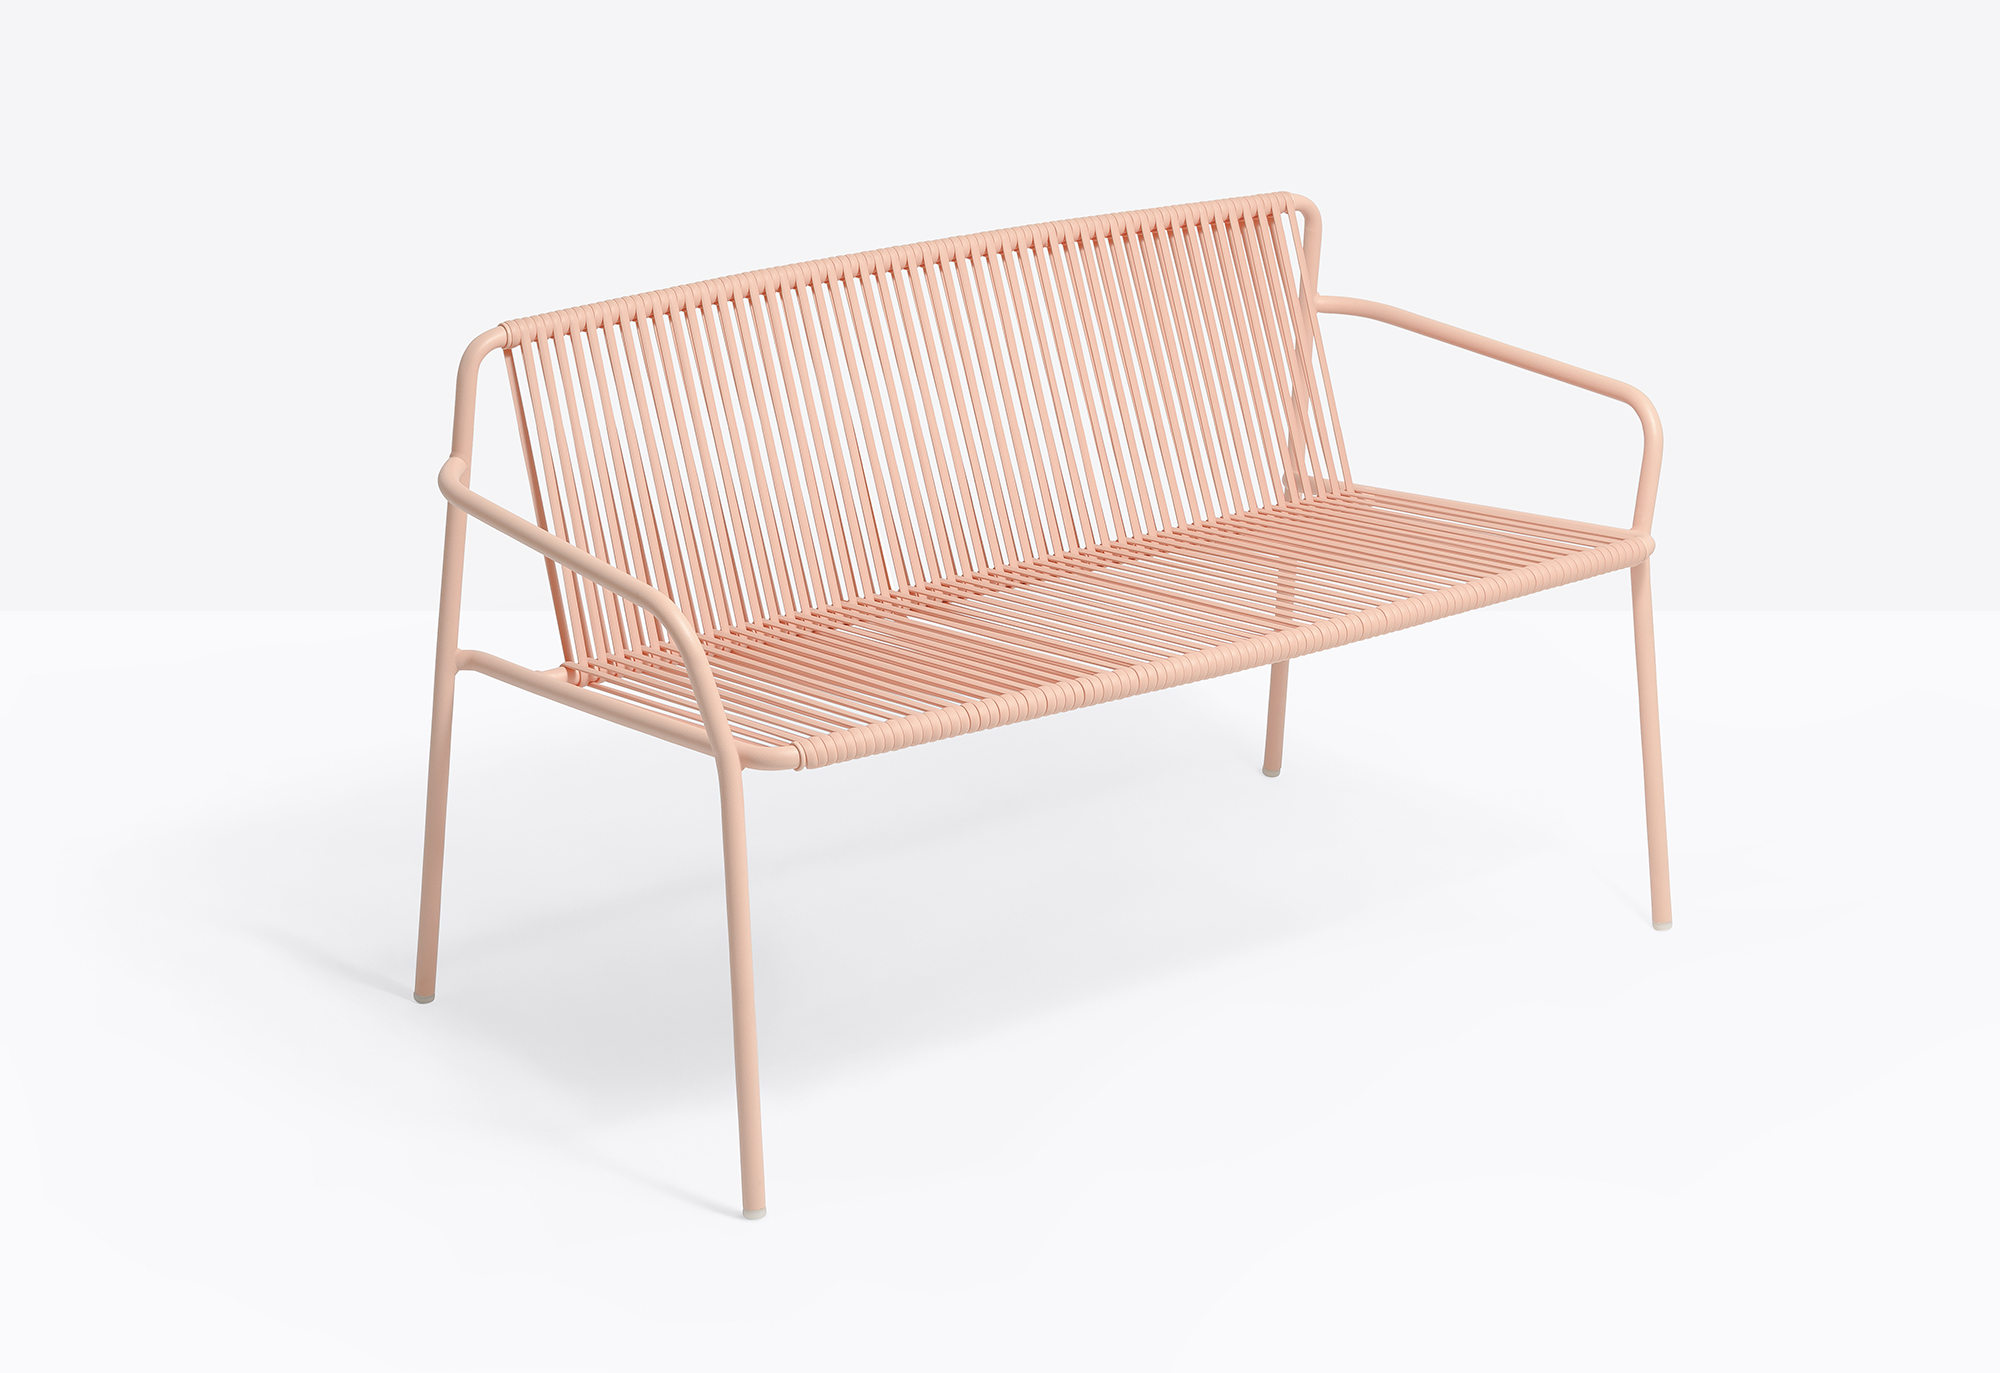 Tribeca Bench - Tribeca evokes the comforting echoes of the past, offering a modern reinterpretation of the classic Sixties patio chairs made from steel and woven cord. The stackable two-seater sofa has a steel tube frame Ø2cm powder coated for outdoor use, back and seat in vertically-woven extruded PVC with nylon core. The collection is specifically designed for outdoor use. | Matter of Stuff